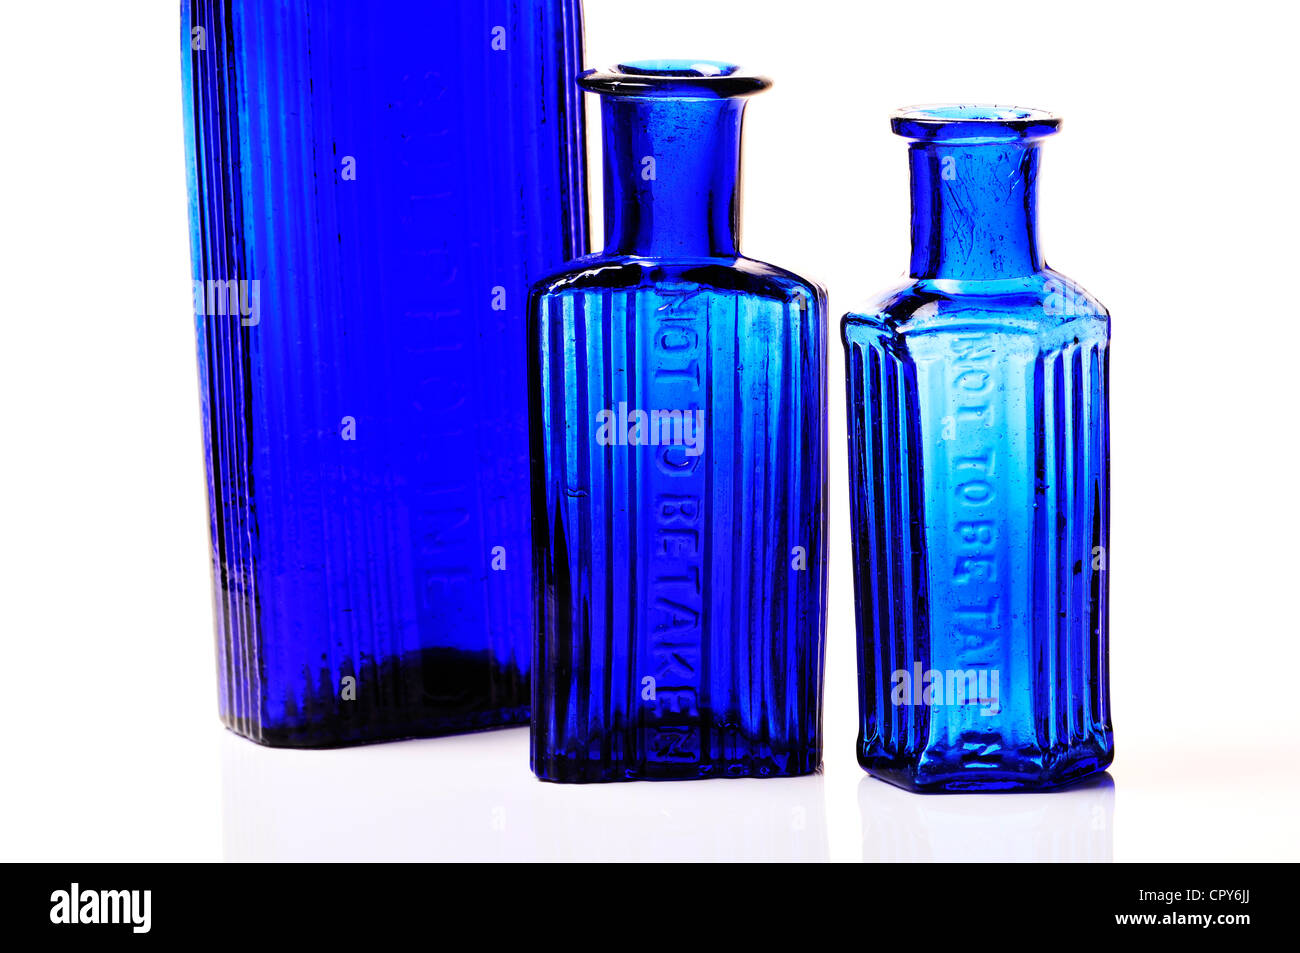 Blue poison bottles 'Not To Be Taken' - Stock Image